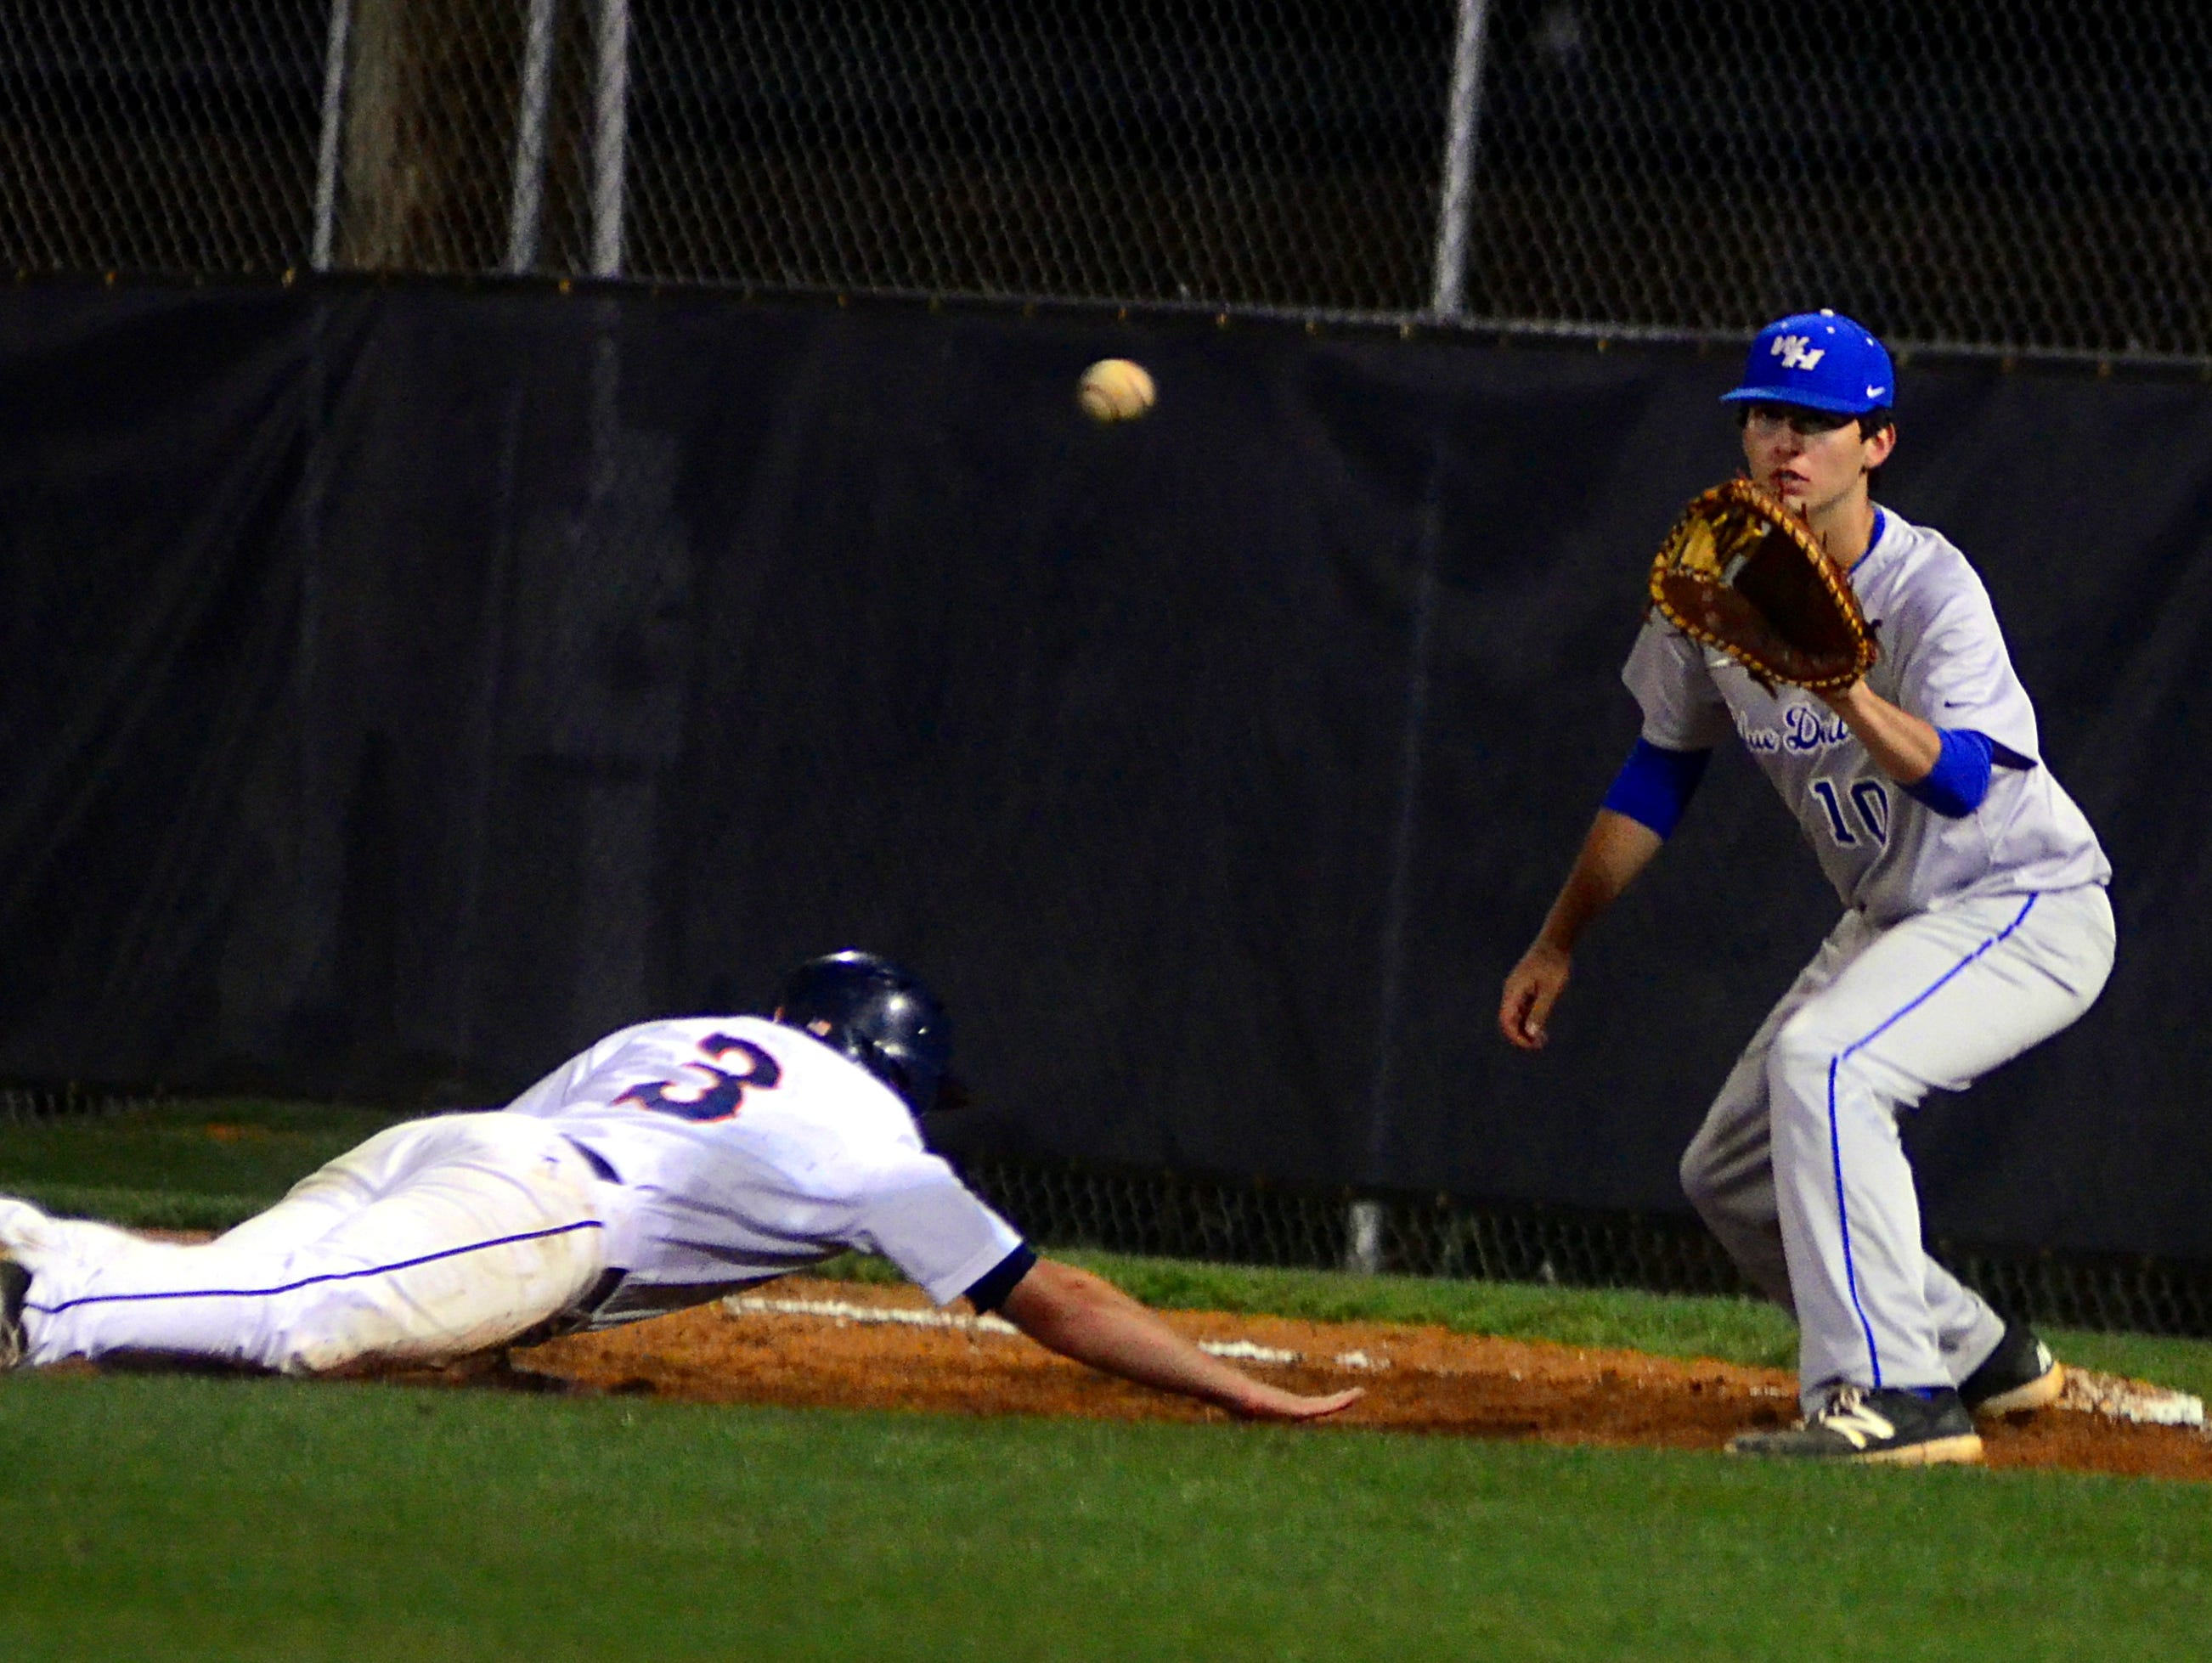 White House High senior Landon Sewell receives a pickoff throw as Beech senior Jesse McCoy dives back to first base during fourth-inning action.